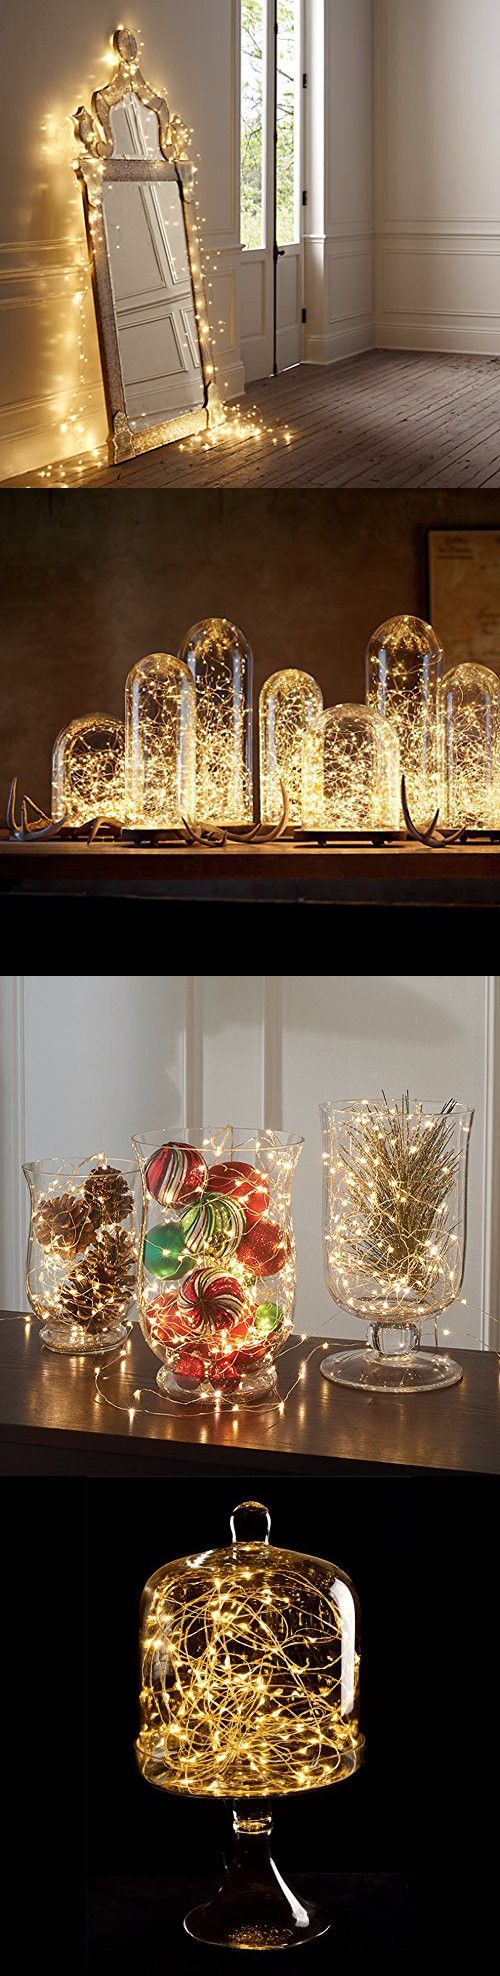 Wedding String Lights Diy : 25+ best ideas about Led string lights on Pinterest Christmas string lights, Led christmas ...